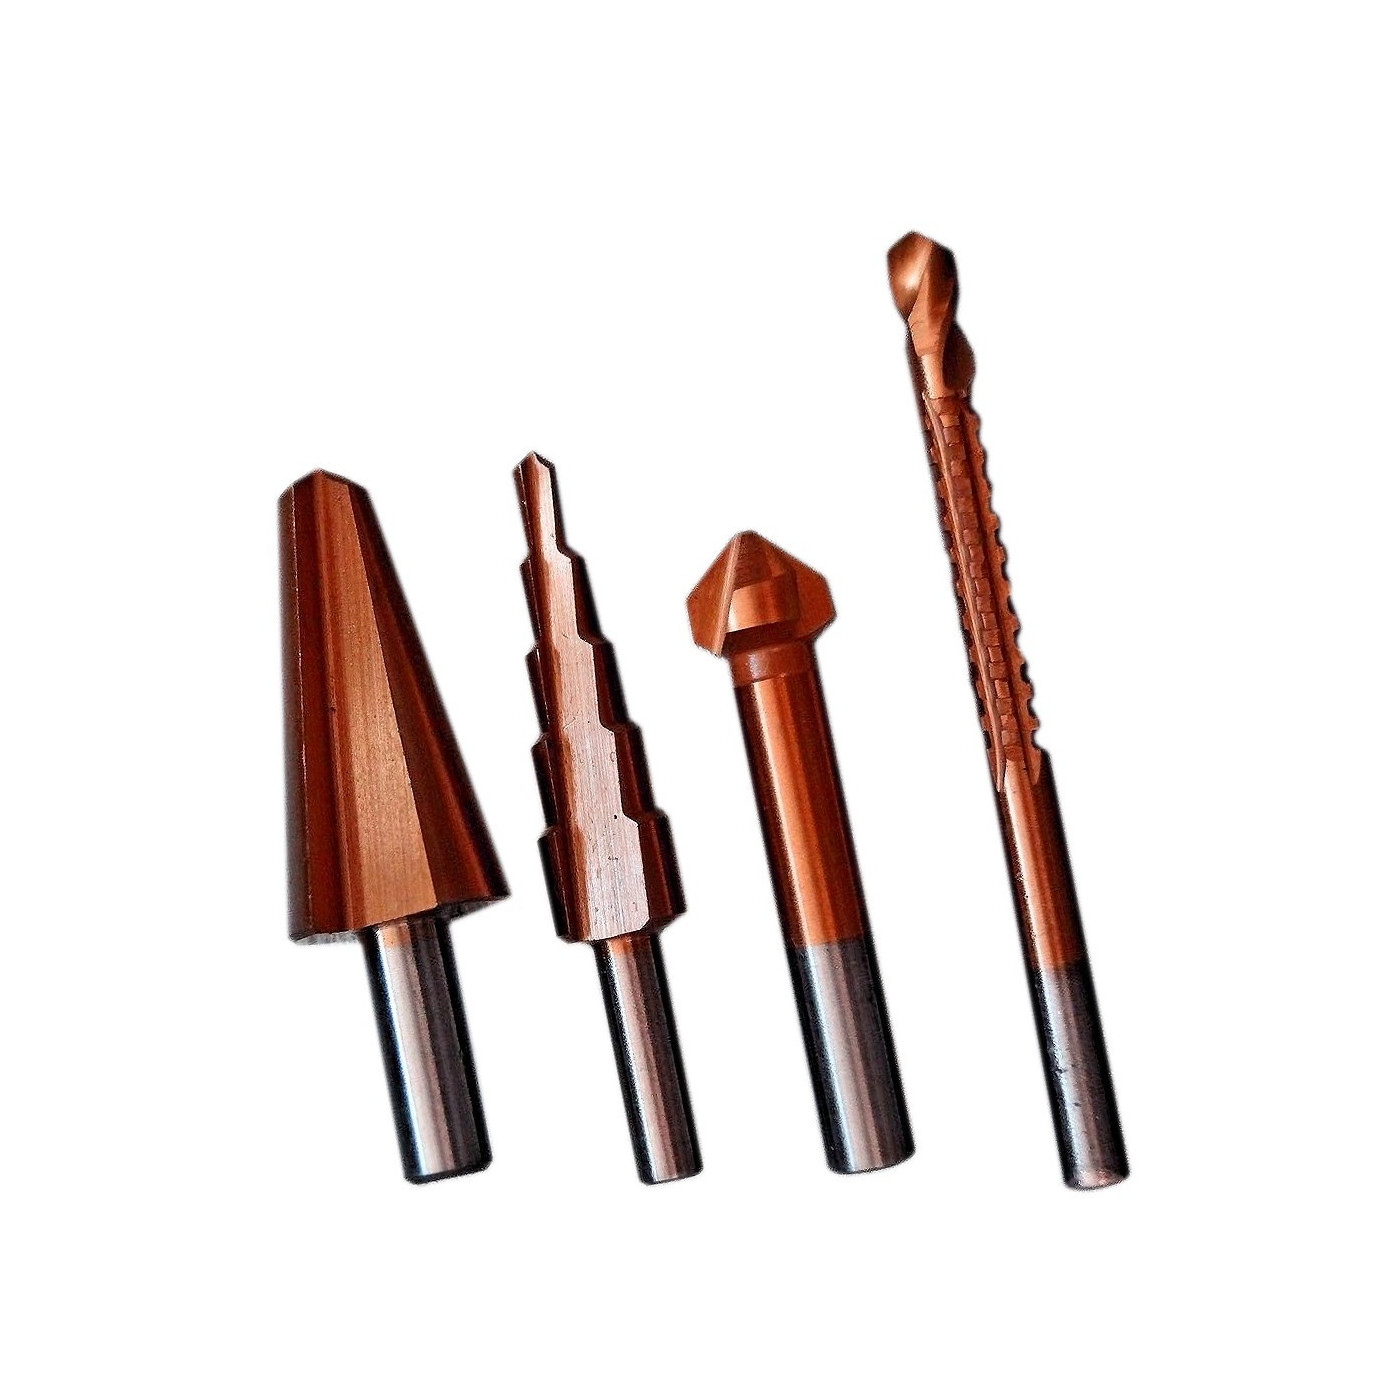 Set of various drills (stepping drill, countersink drill,..)